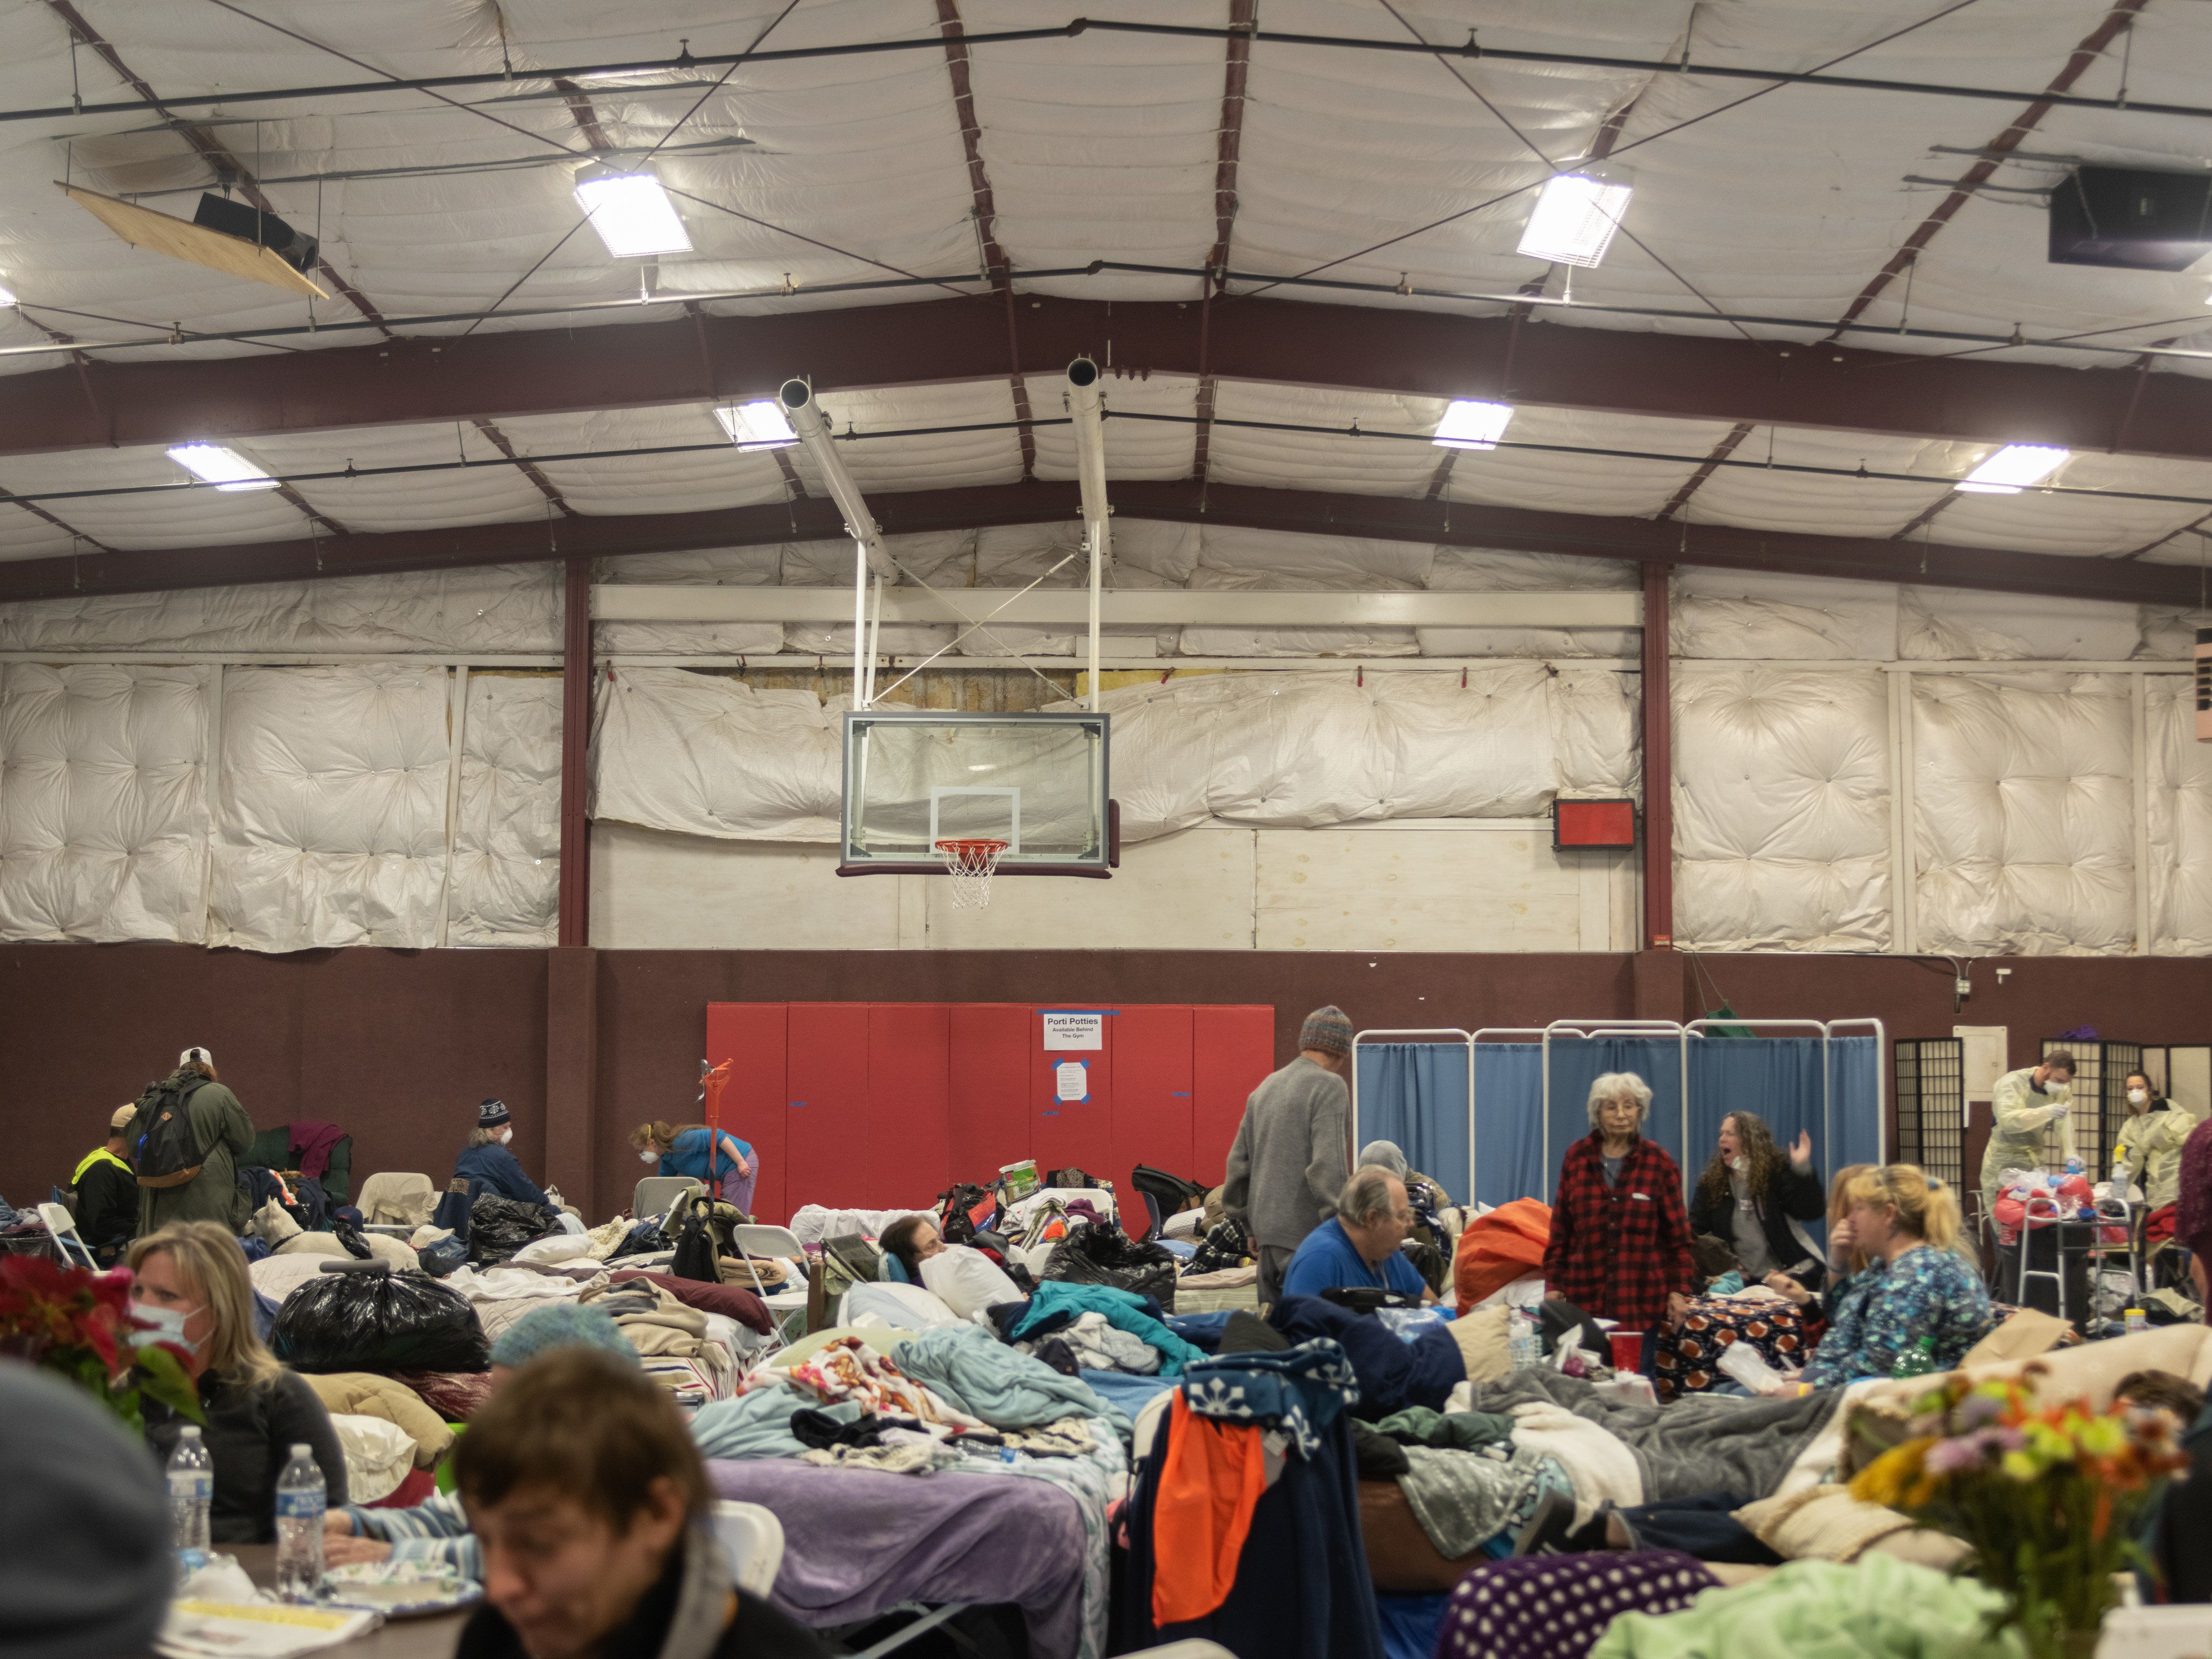 East Ave Church shelter in Chico is housing more than 250 evacuees, including Vivian Fahlgren.